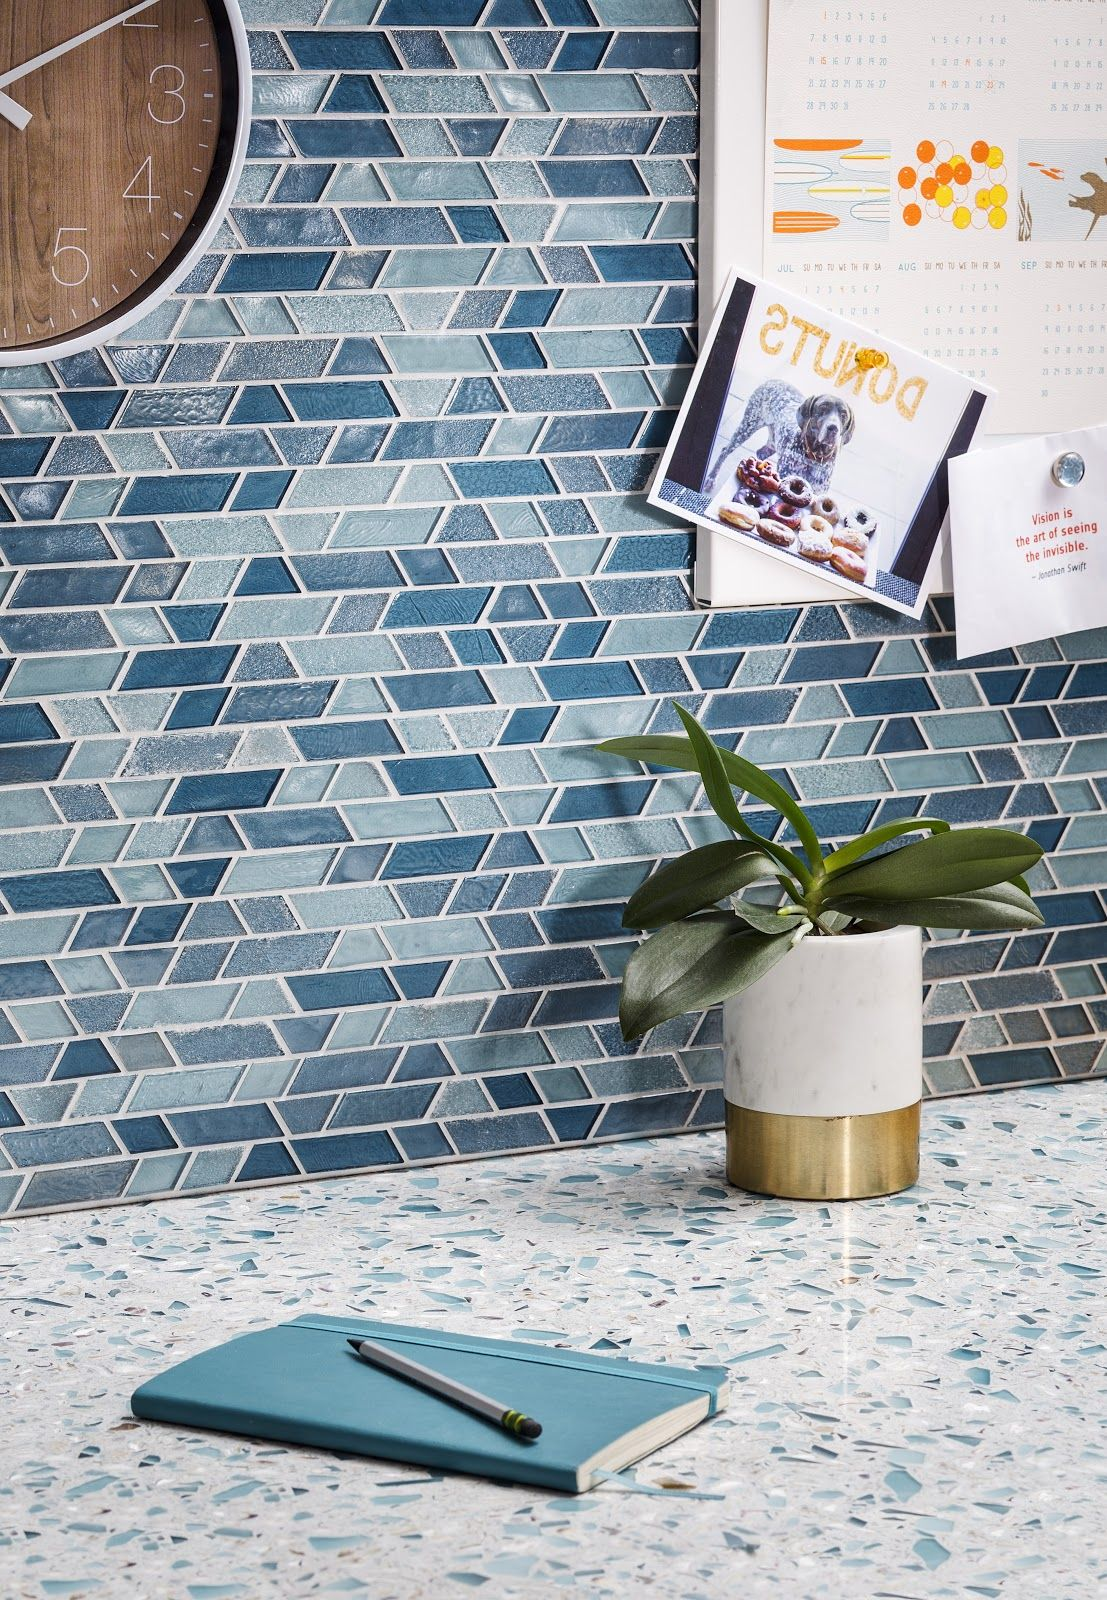 - Recycled Glass Countertops From Vetrazzo And Recycled Glass Tiles